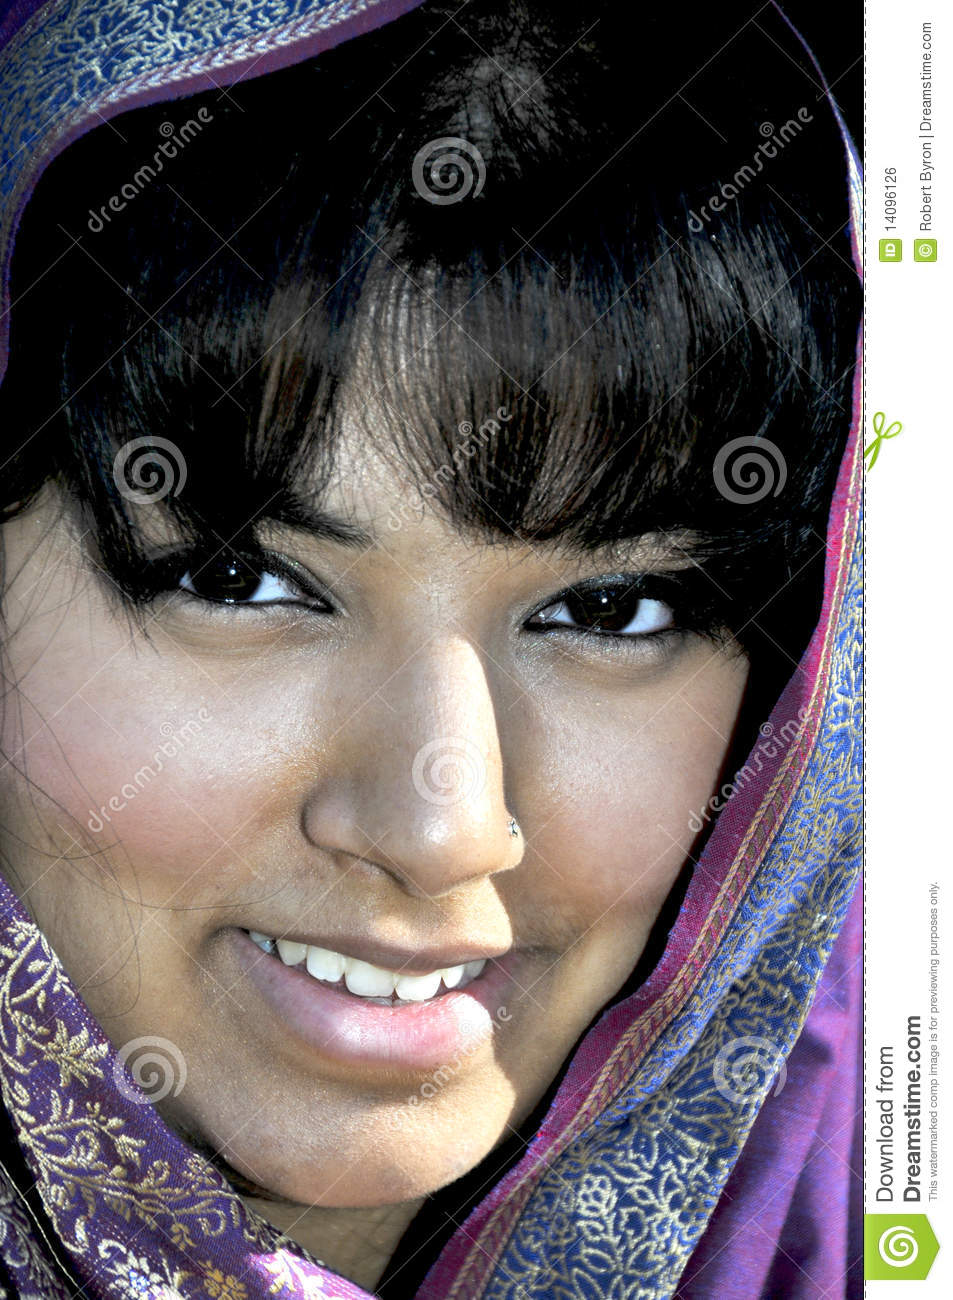 asian single women in indian head Asian dating events and apps portal for indian singles living in the uk we cater for british asian dating who are from an indian origin.